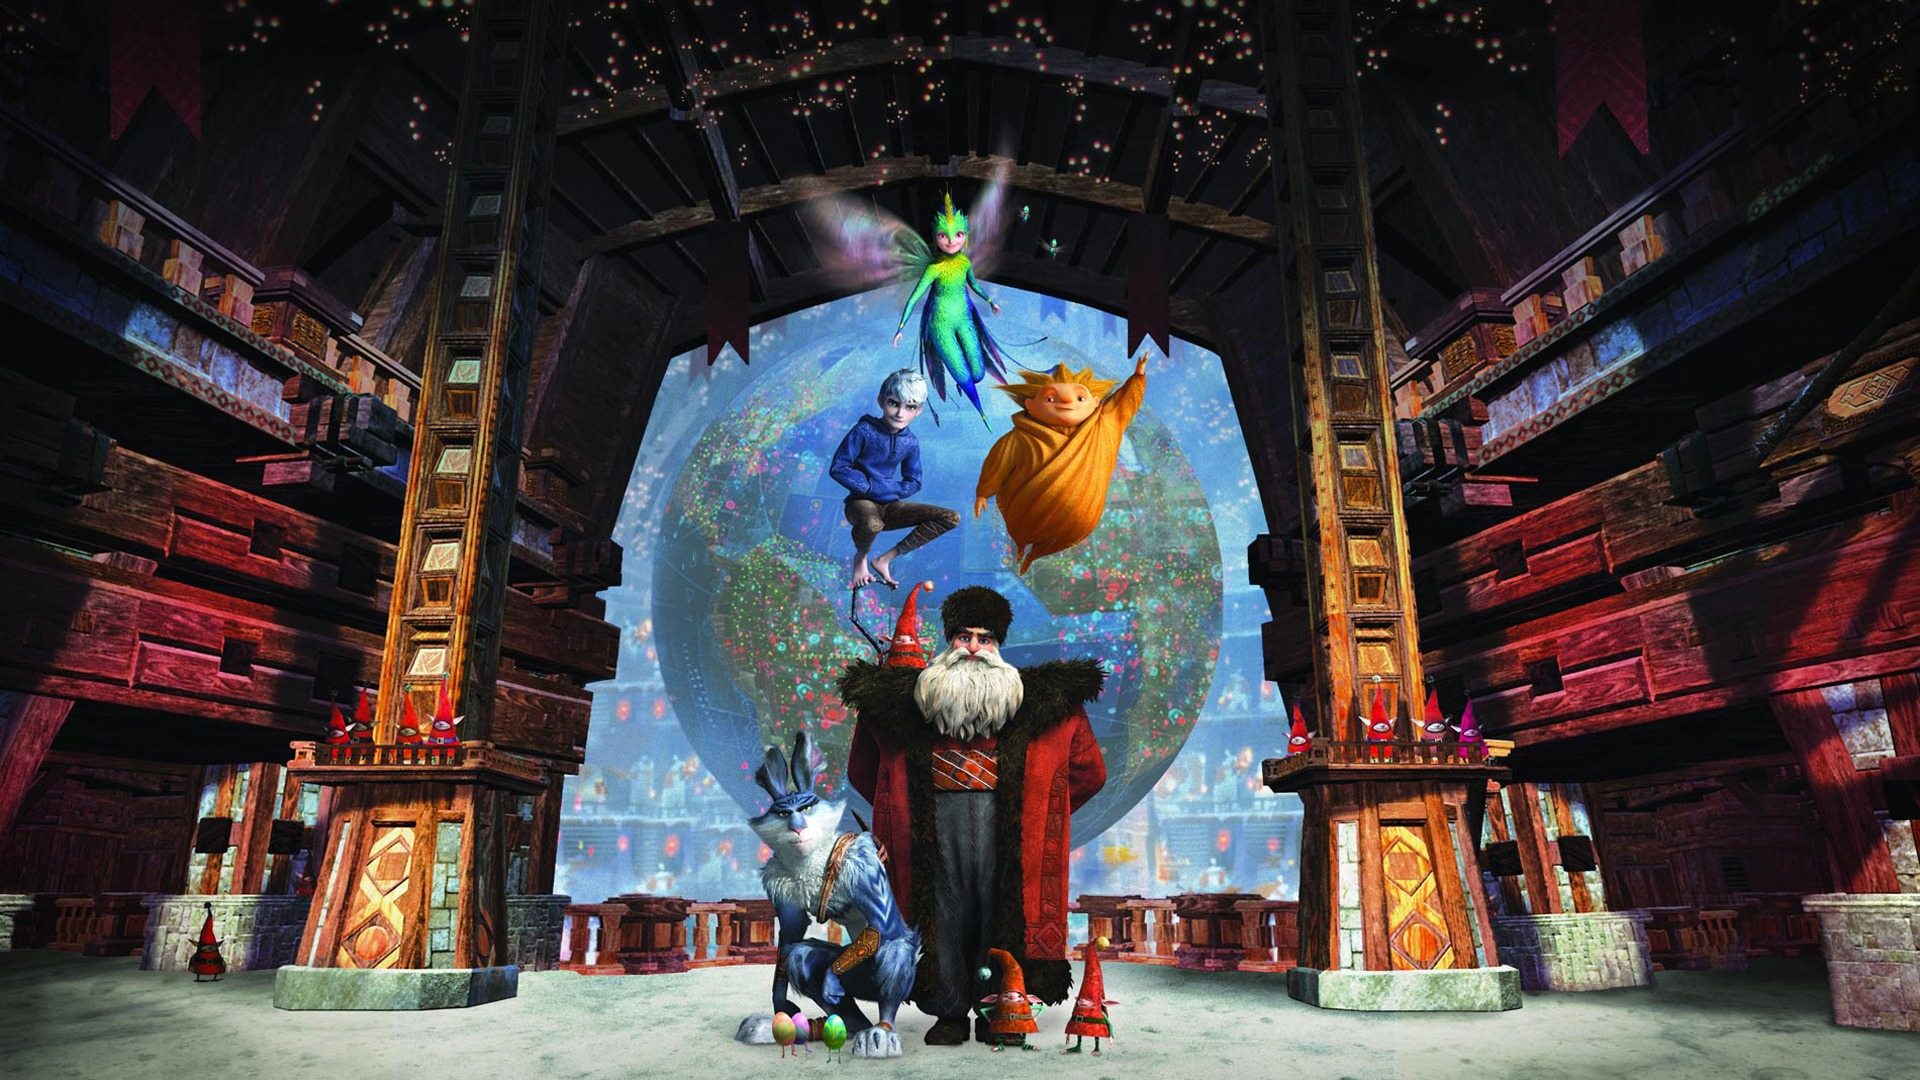 Rise of the guardians hd wallpapers 7 1920x1080 wallpaper rise of the guardians hd wallpapers 7 1920x1080 thecheapjerseys Gallery